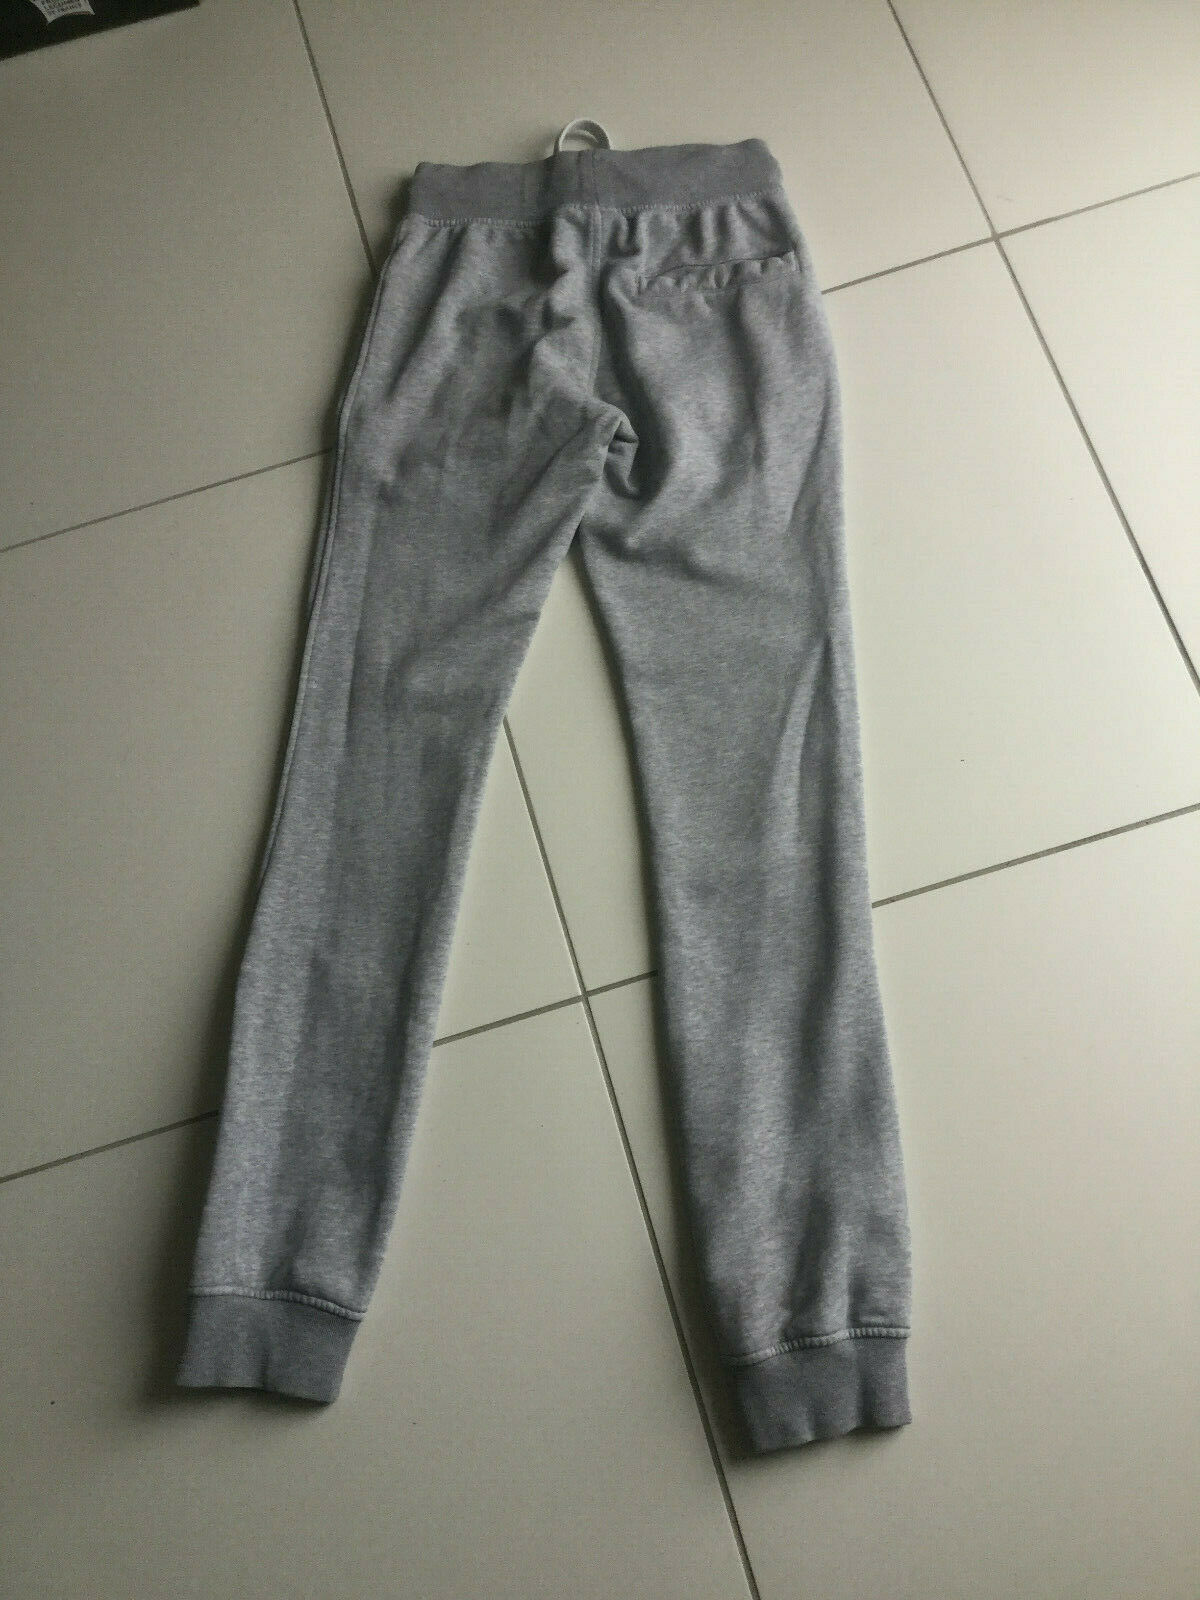 Pantalon de sport / jogging - adidas originals established 1972 - t:xs - vintage